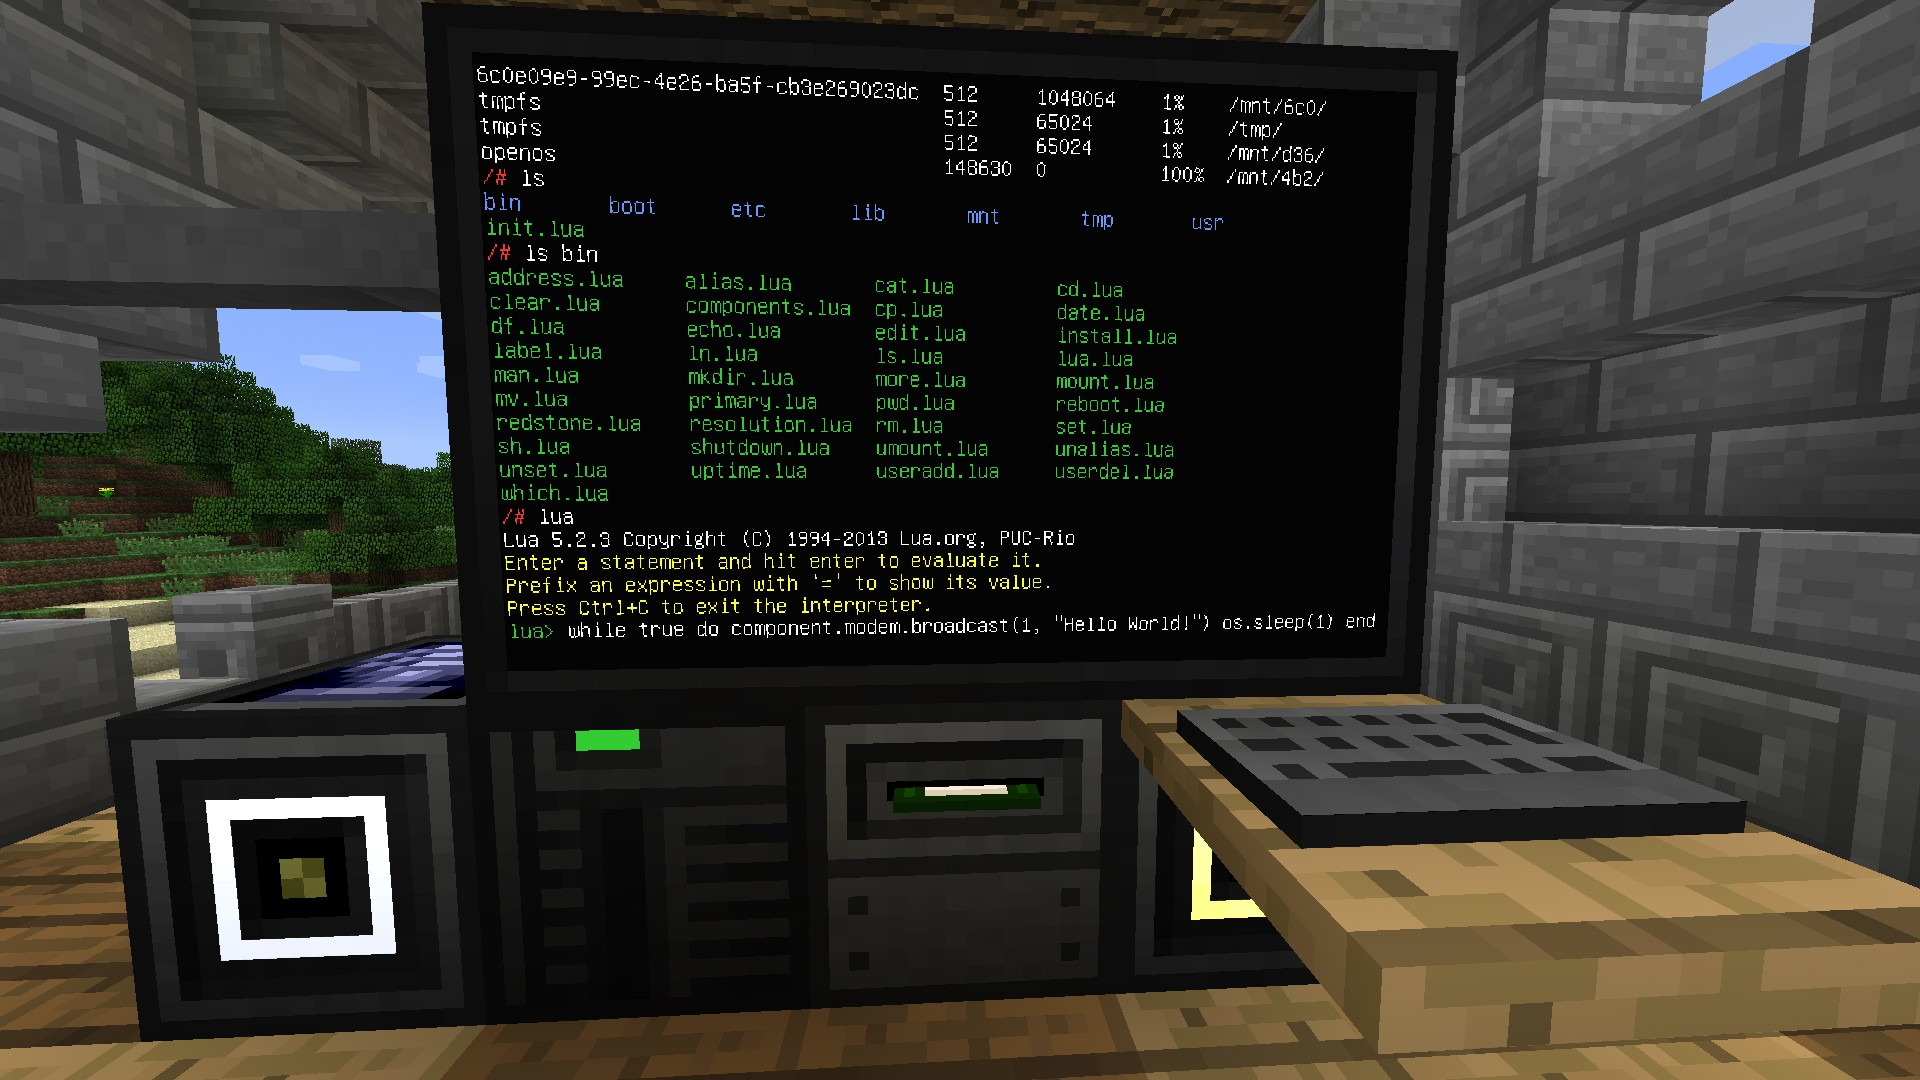 Program a Virtual Computer in Minecraft To Control Stuff in the Real-World